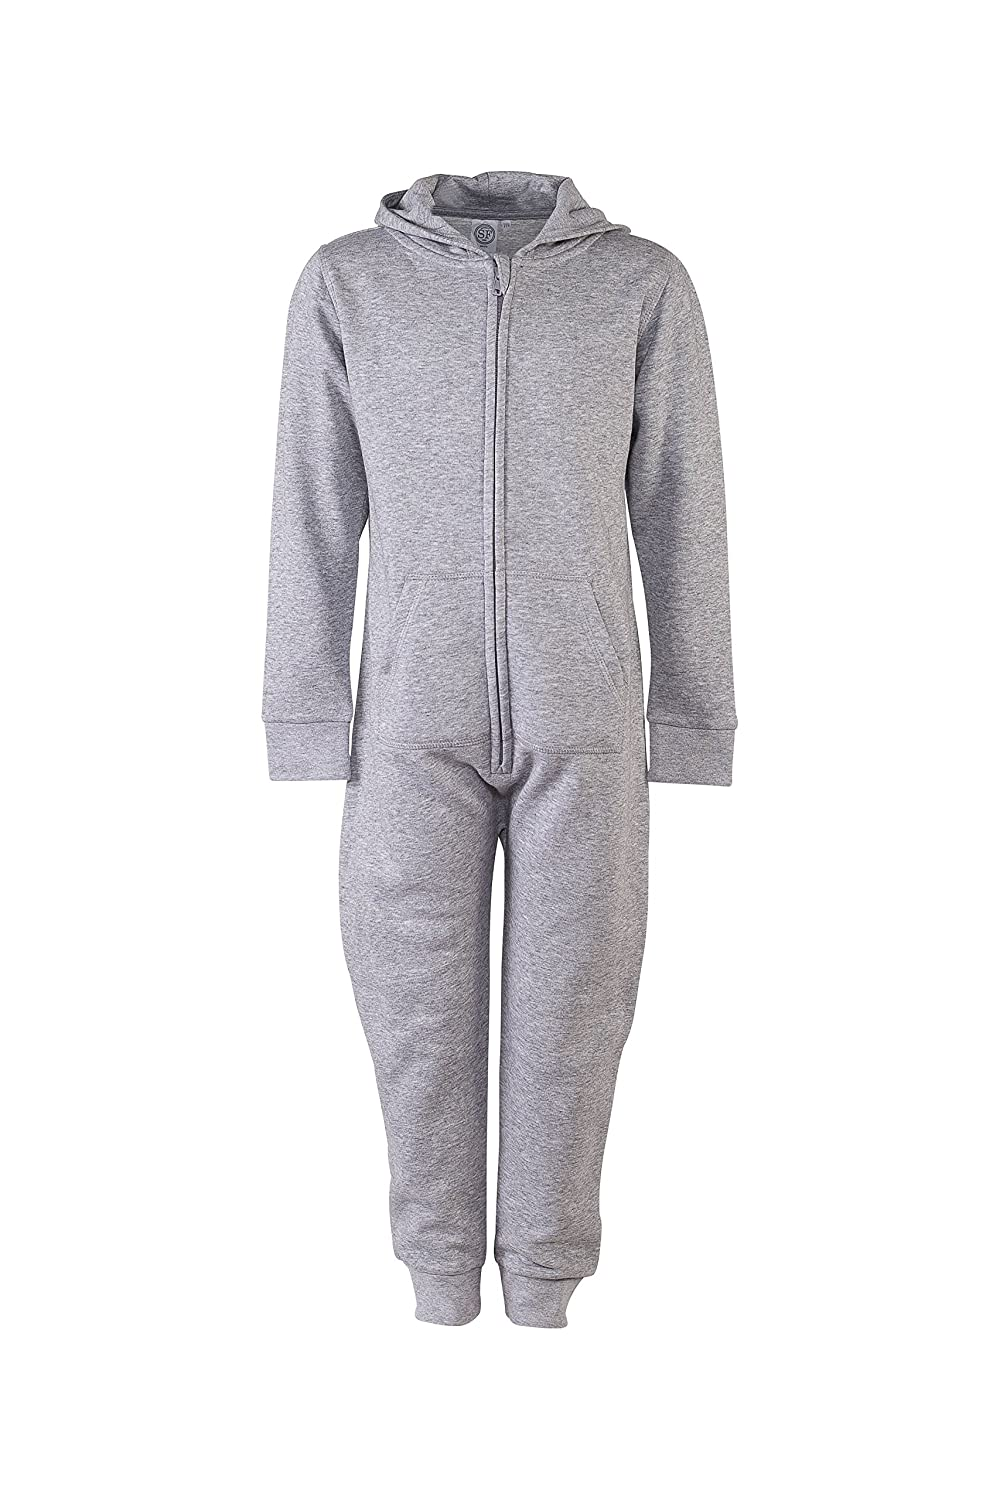 Skinnifit Kids Unisex All in One